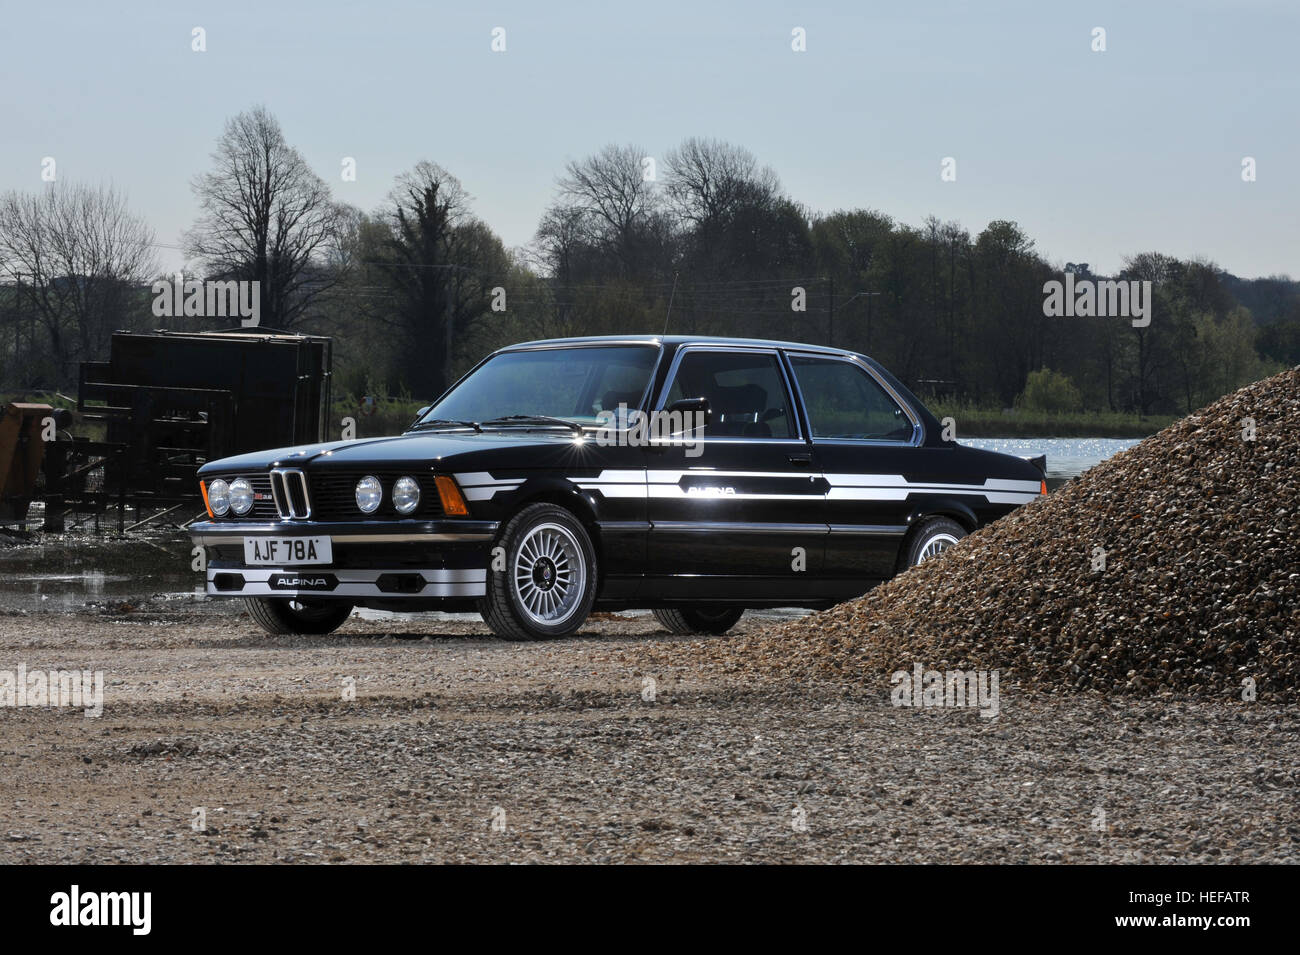 1983 bmw e21 alpina b6 form sportcoup deutsche oldtimer. Black Bedroom Furniture Sets. Home Design Ideas